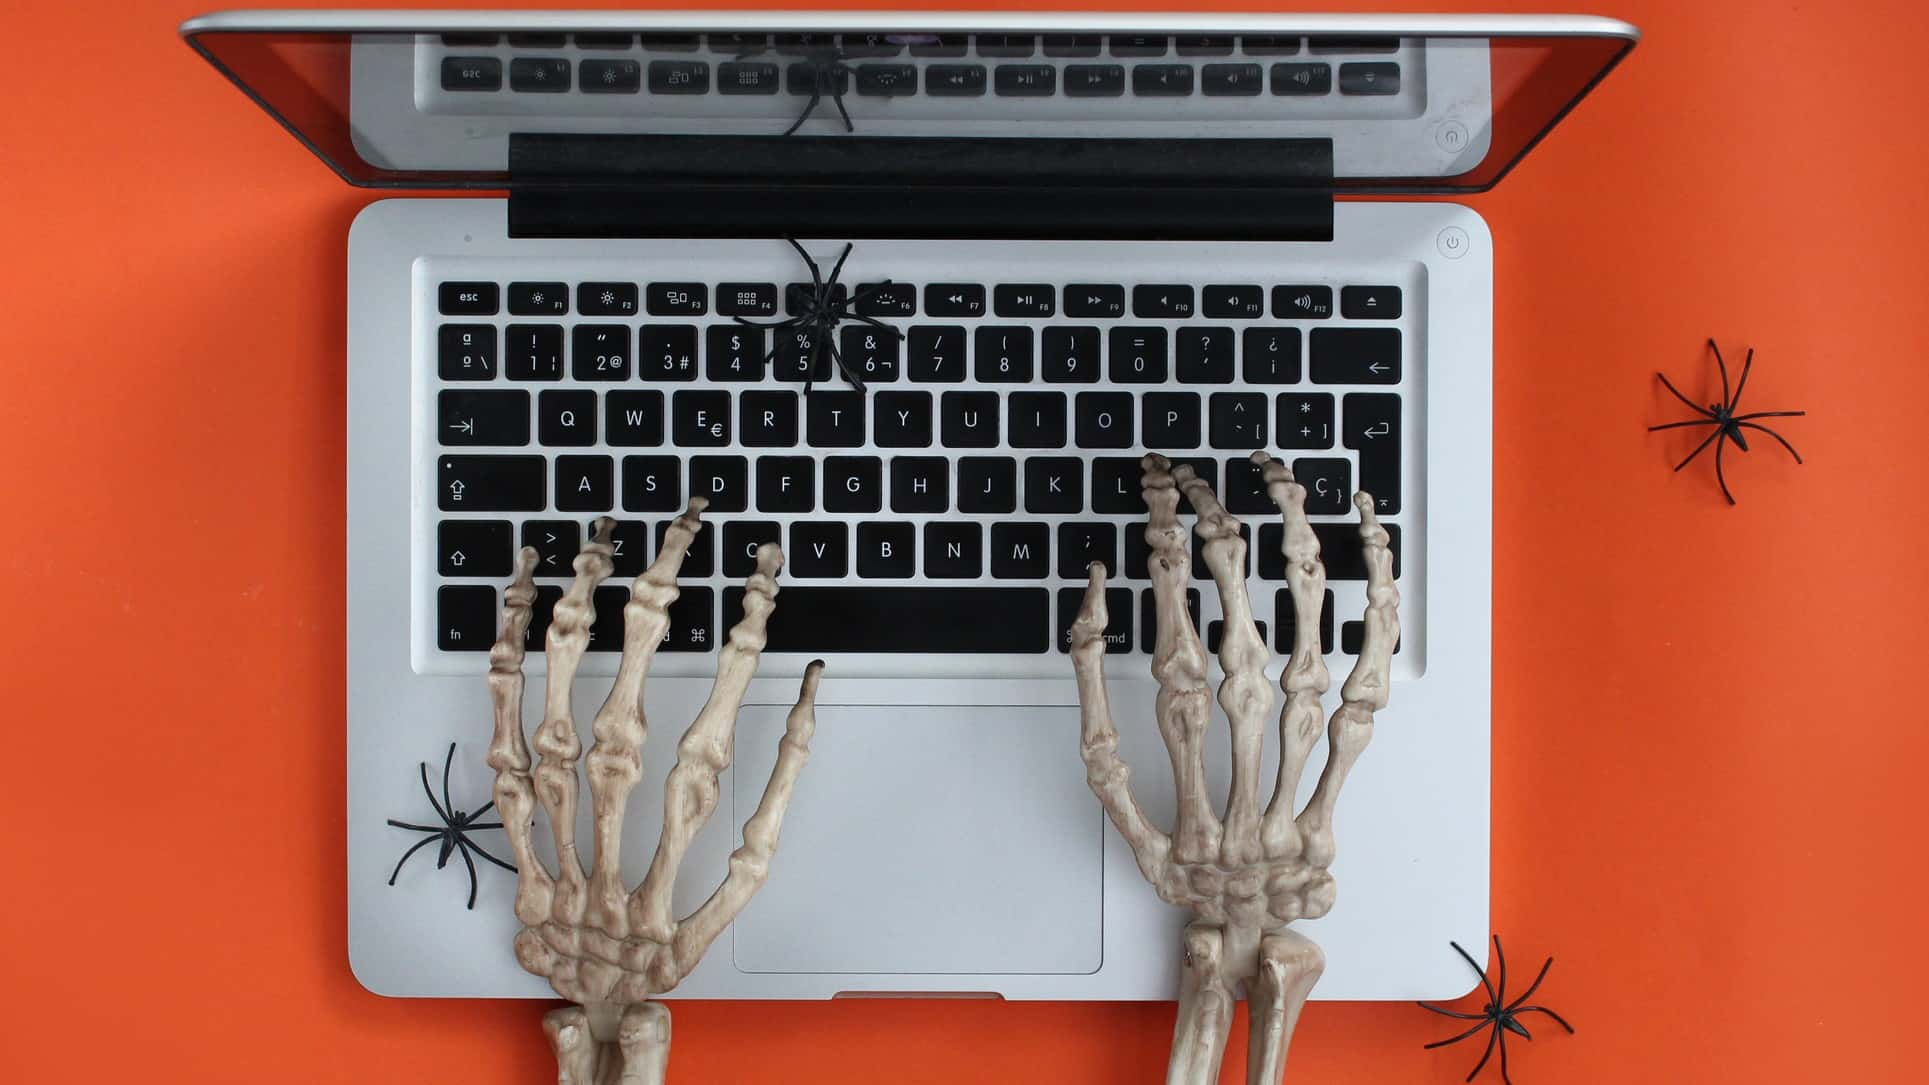 skeleton hands typing on laptop signifying that value investing is dead